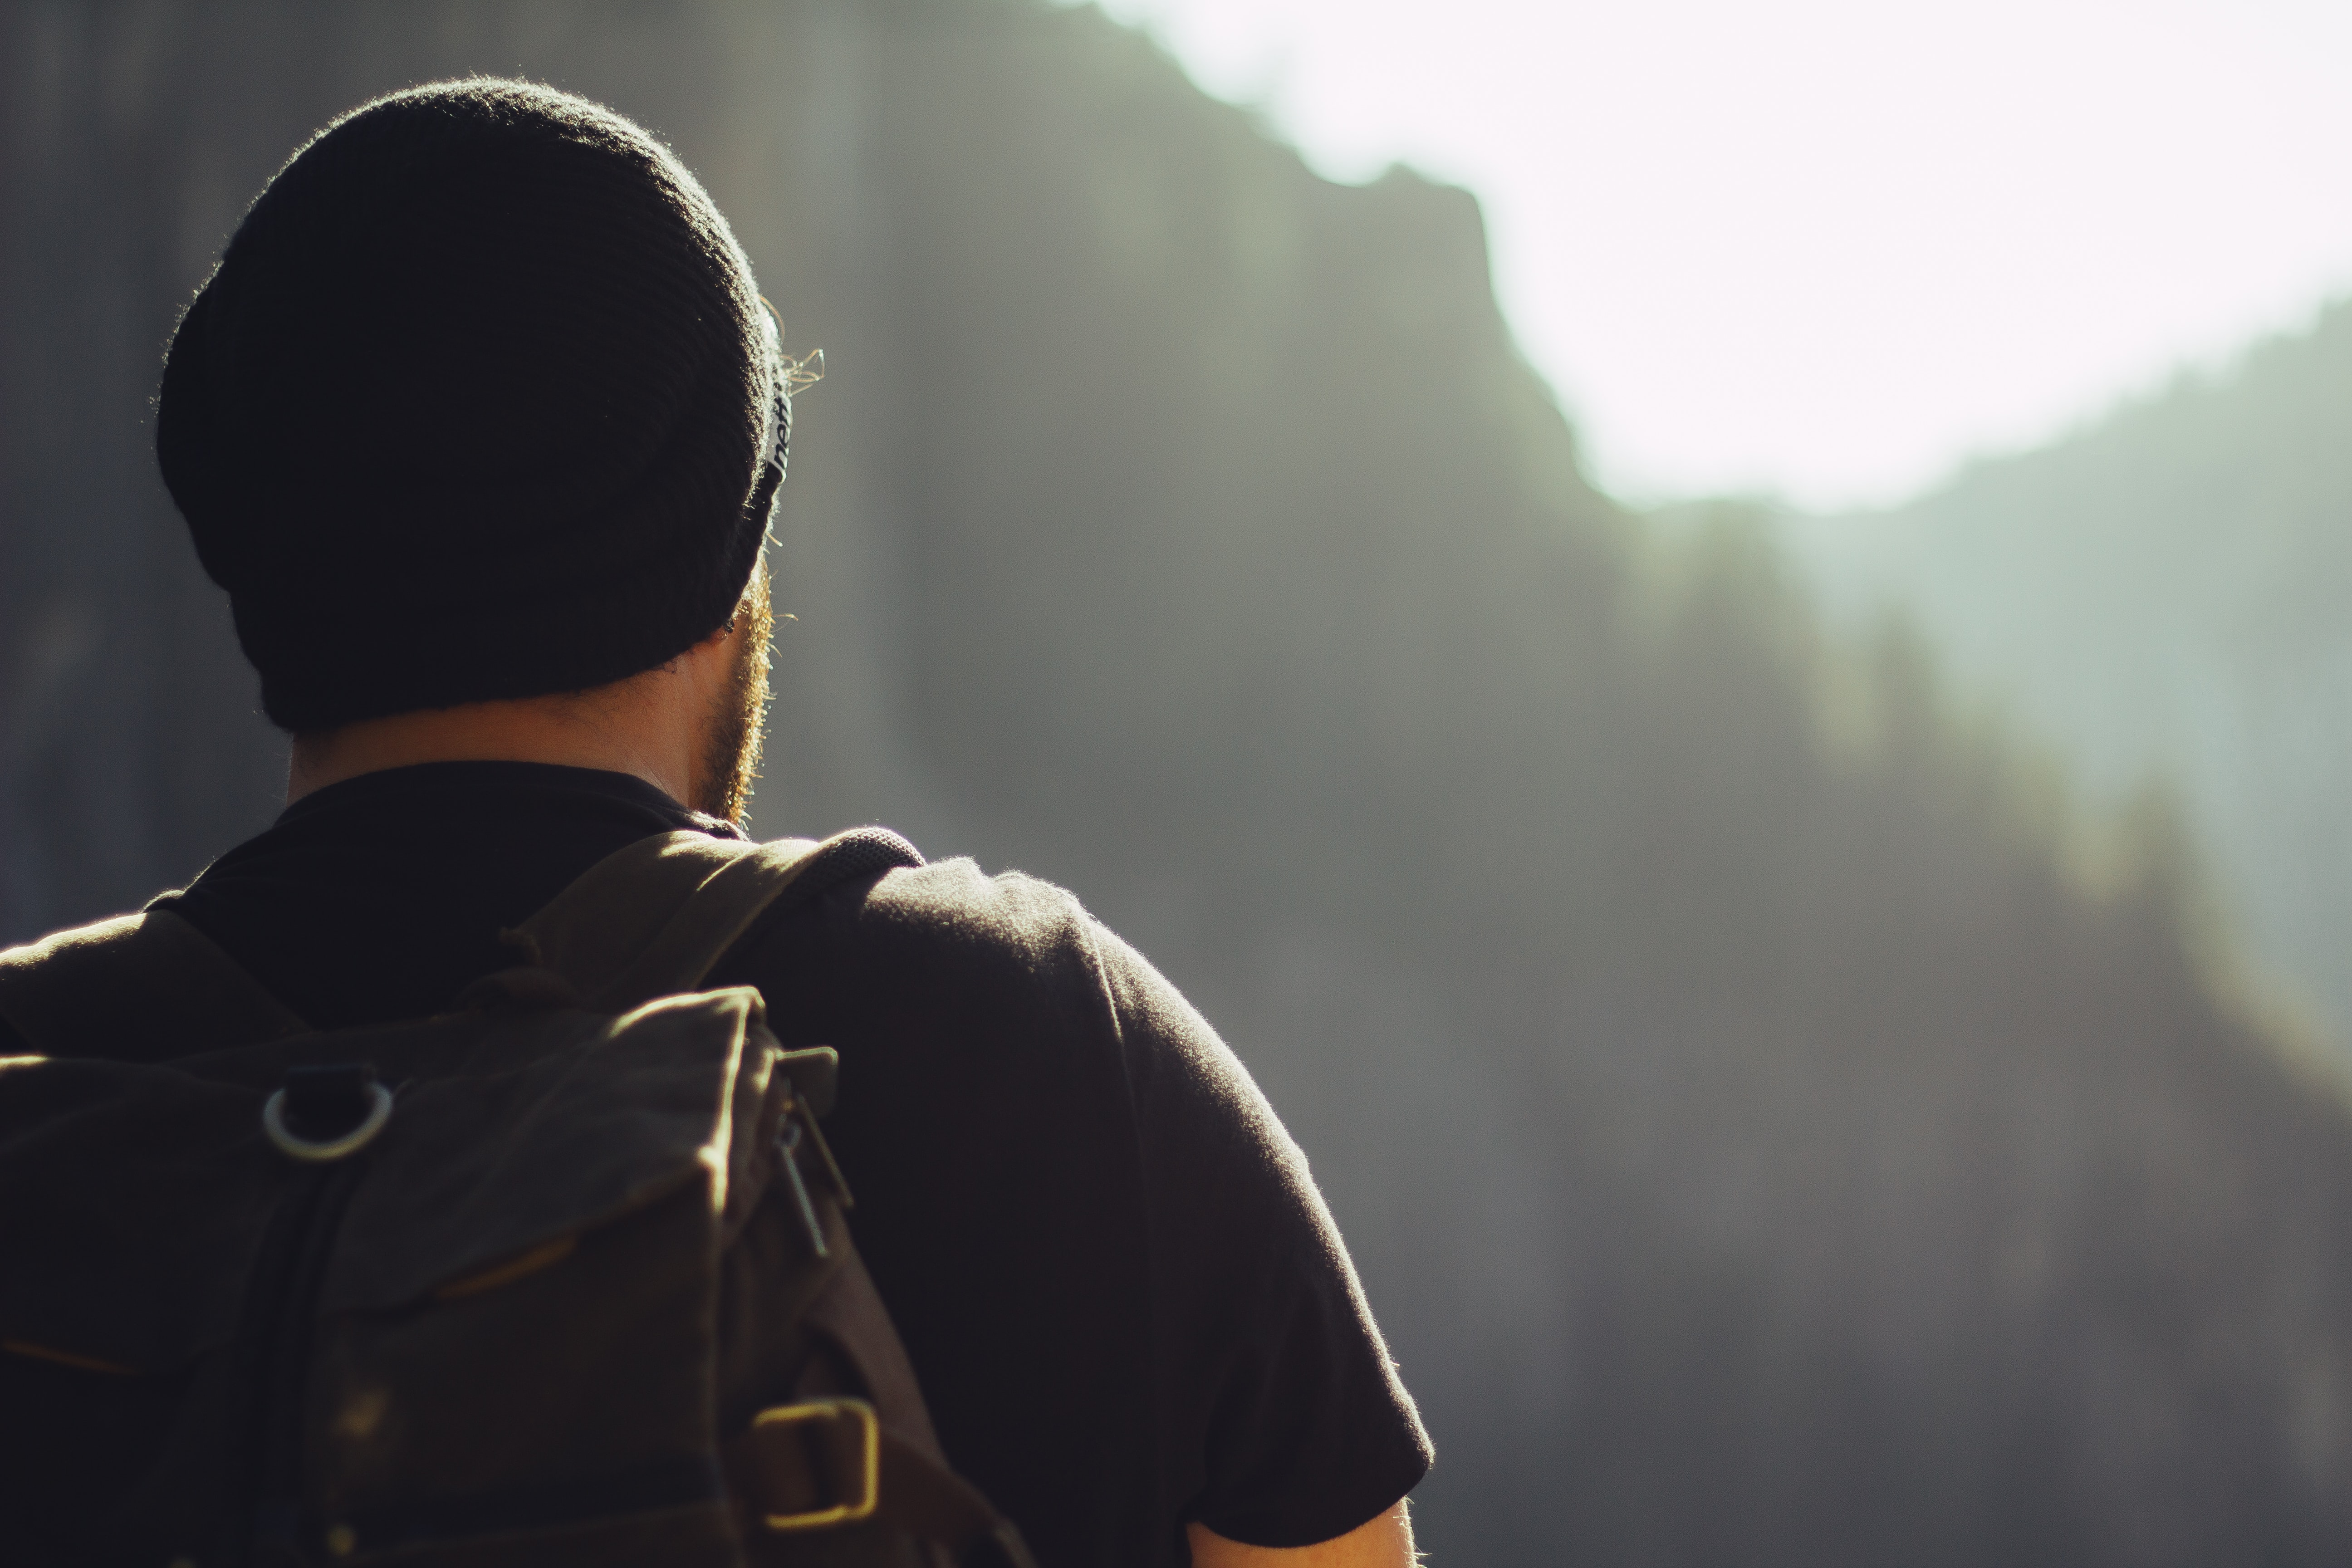 The back of a man wearing a backpack and a beanie in Yosemite National Park